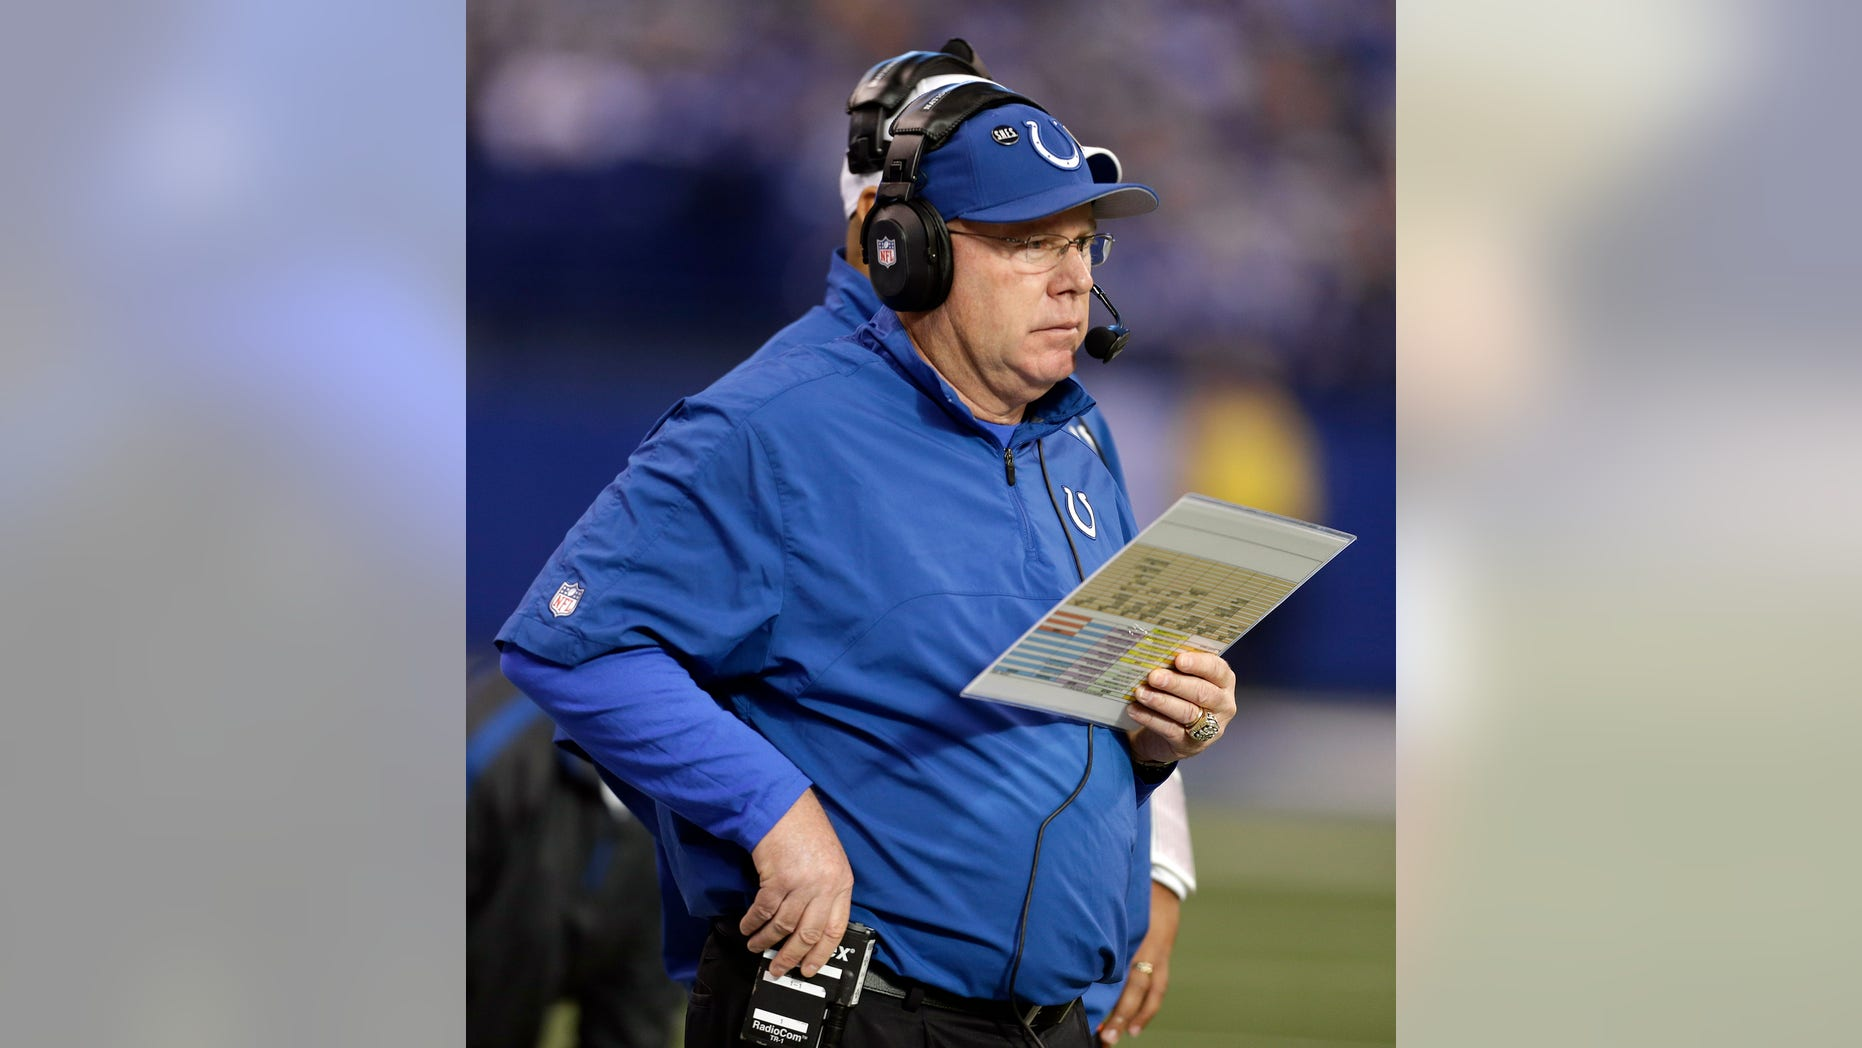 FILE -In this Sunday, Dec. 30, 2012 file photo, Indianapolis Colts offensive coordinator Bruce Arians watches during the first half of an NFL football game against the Houston Texans, in Indianapolis. Arians has been hospitalized with an illness Sunday, Jan. 6, 2012. (AP Photo/Darron Cummings, File)